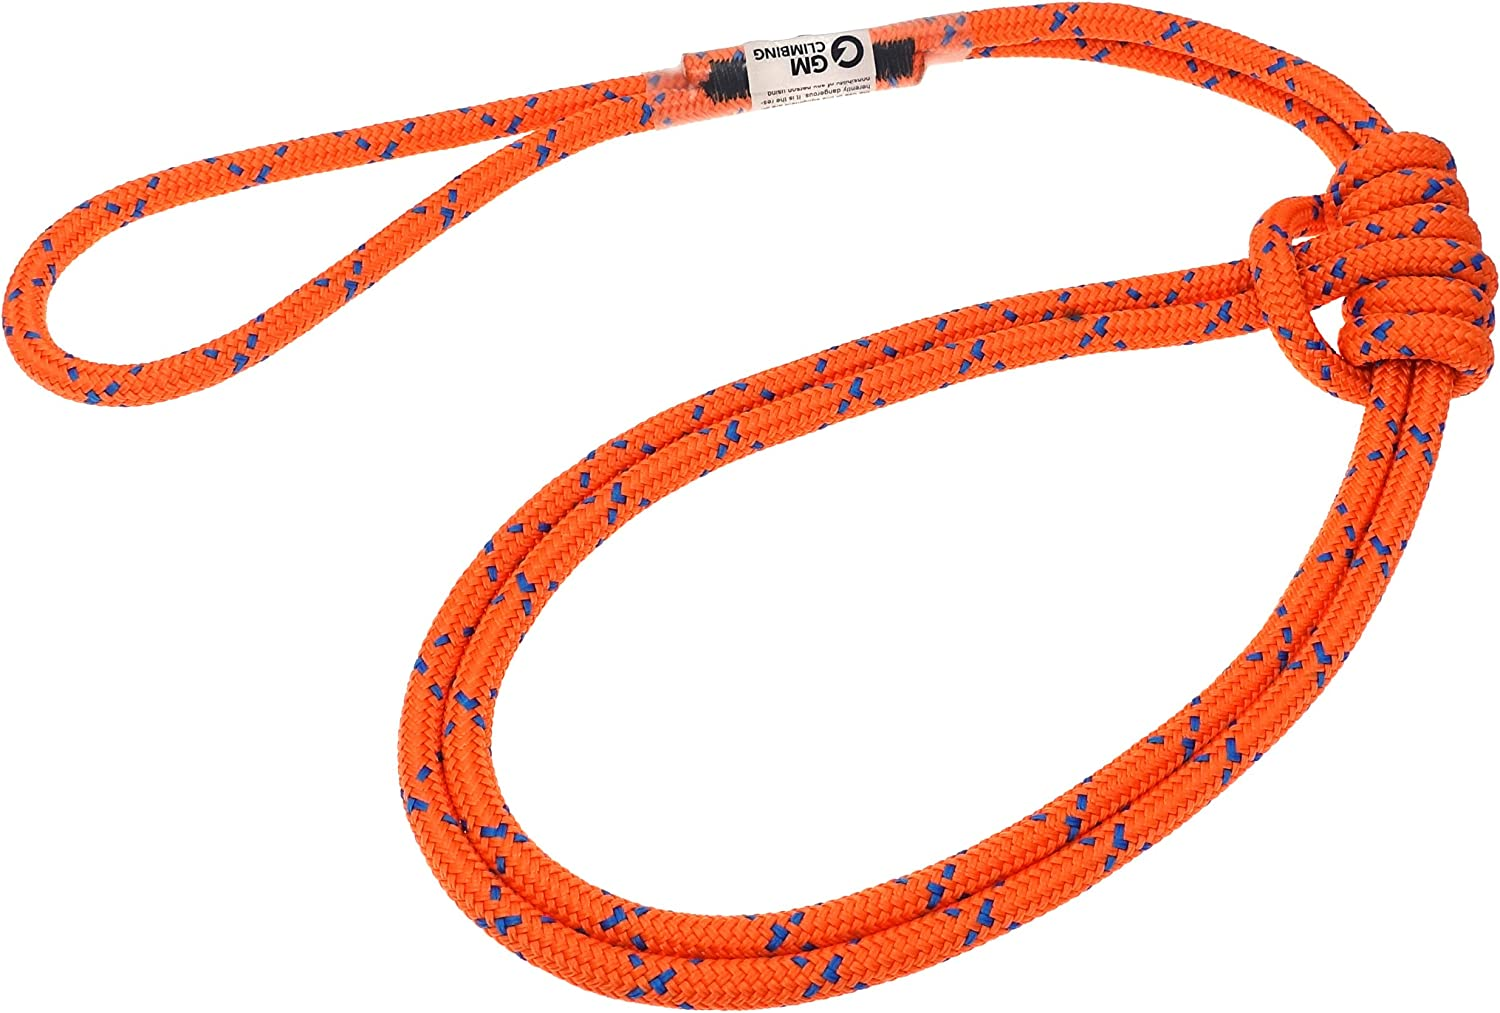 GM CLIMBING 48in 6mm Purcell Prusik Pre-Sewn for Climbing Arborist Rescue Mountaineering General Outdoor Use : Sports & Outdoors